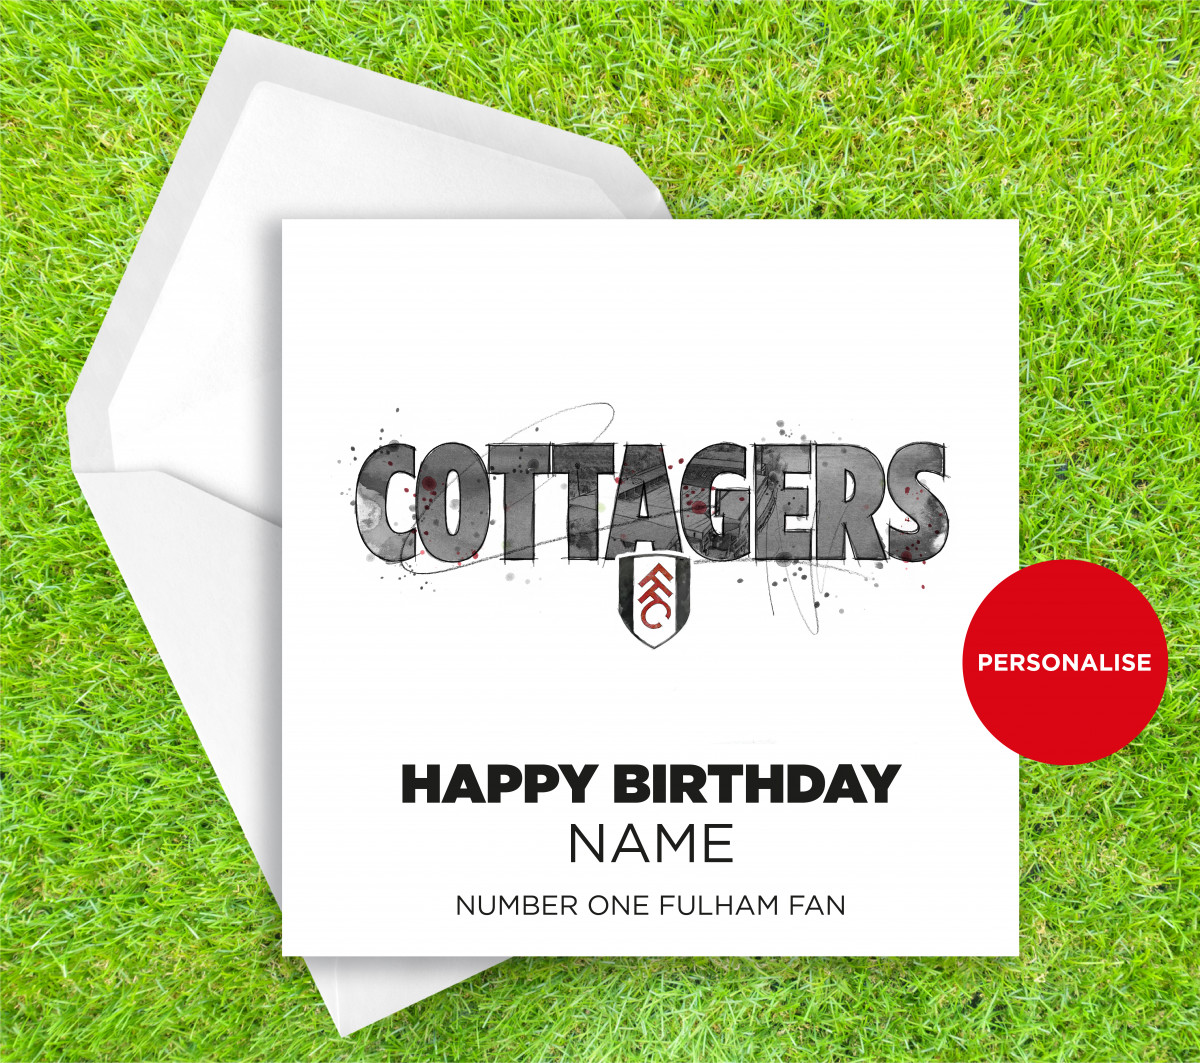 00307 Dm Fulham Cottagers Greetingscard Greetingscard 1 Web